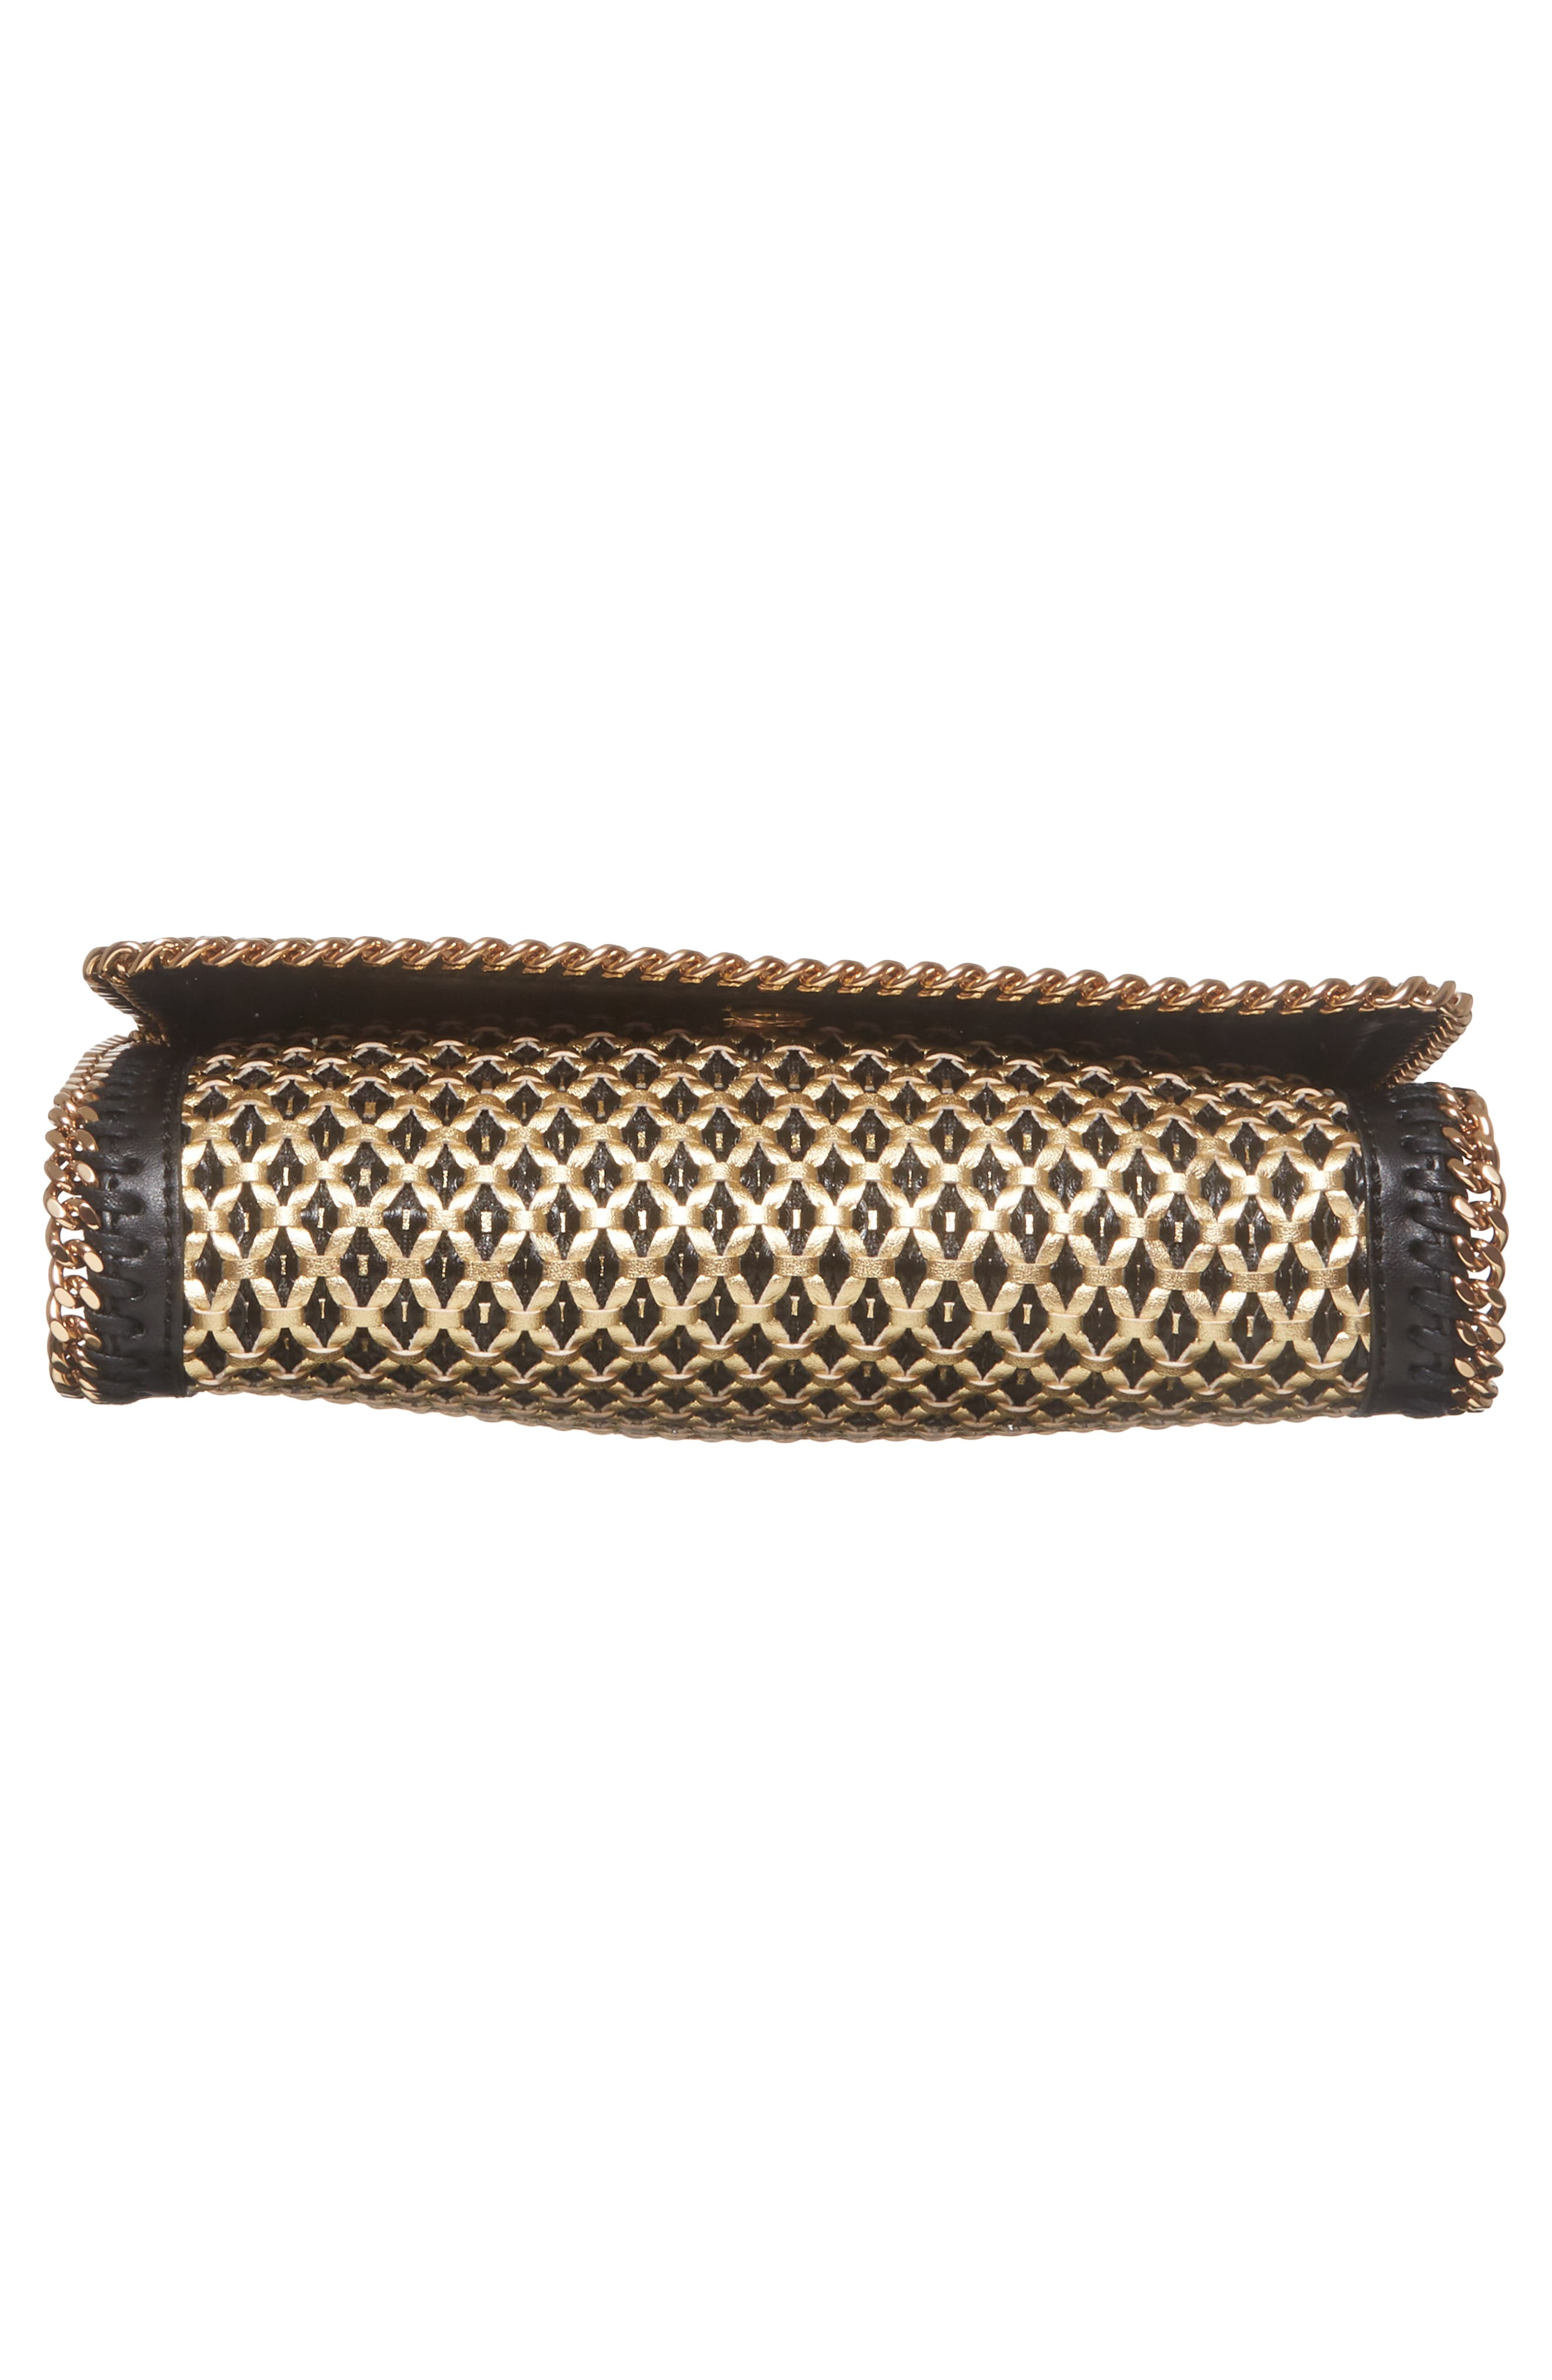 Falabella Woven Faux Leather Clutch,                             Alternate thumbnail 6, color,                             Black